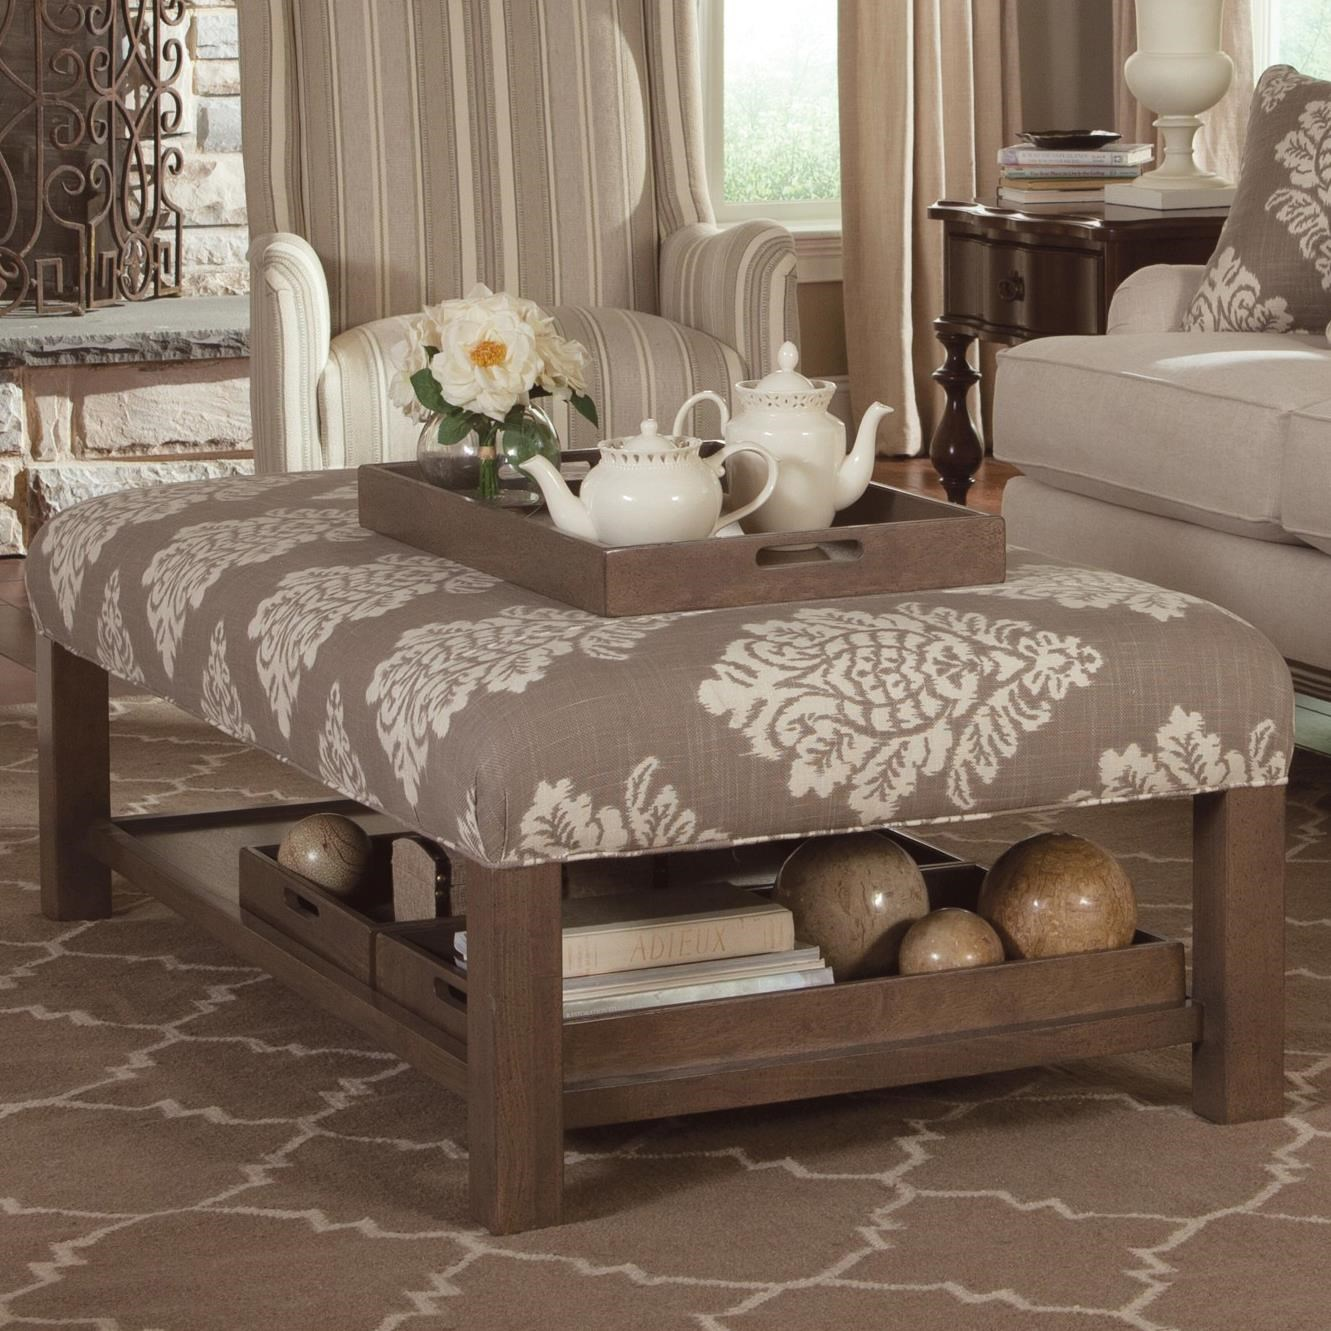 Paula Deen By Craftmaster Paula Deen Upholstered AccentsStorage Bench  Ottoman With Tray Storage ...